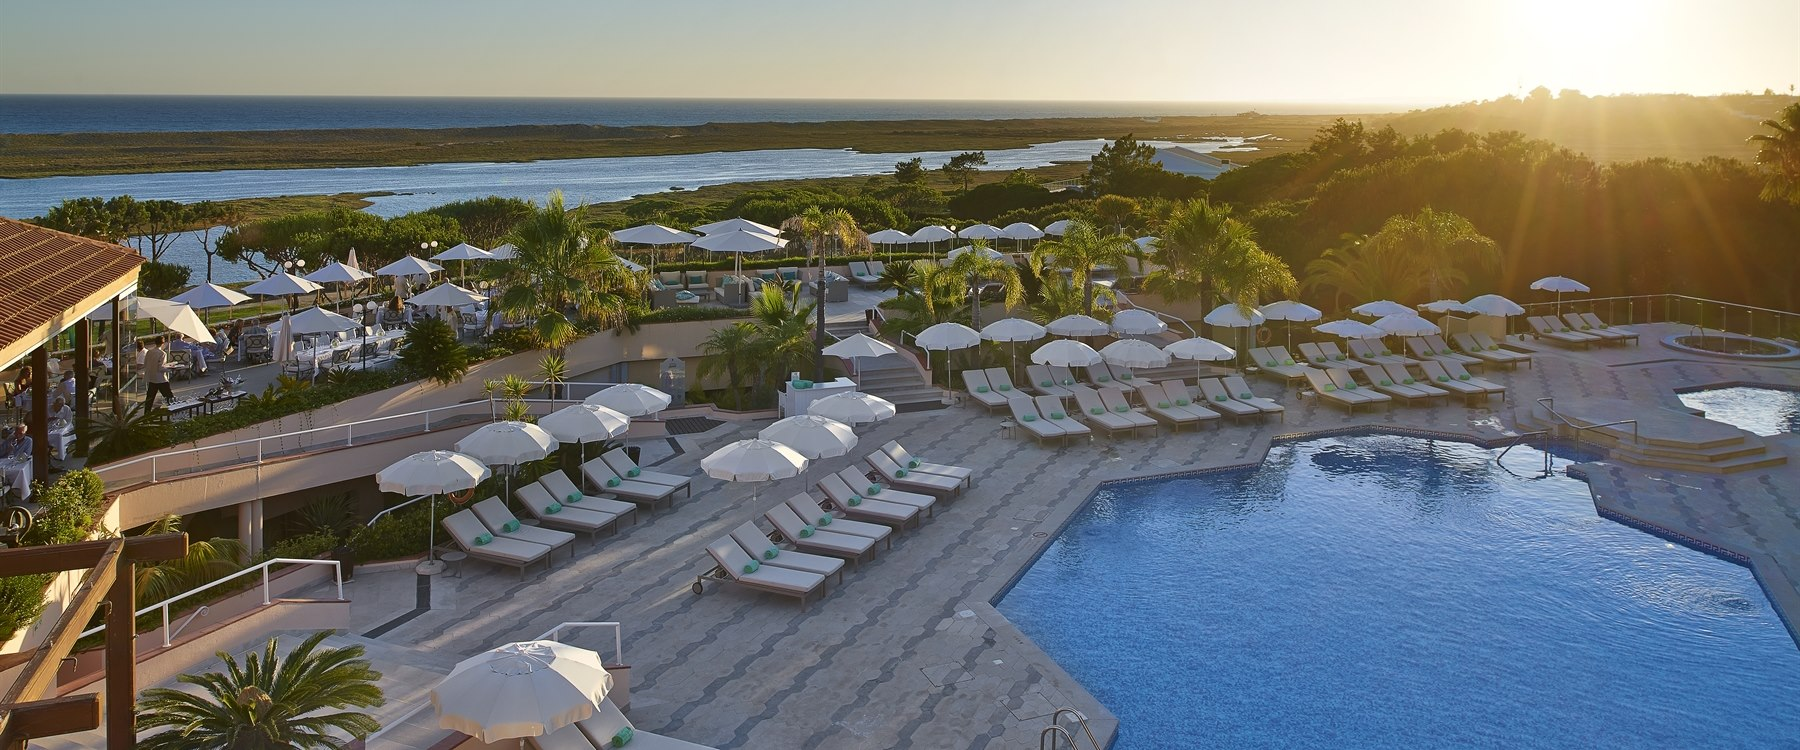 Hotel Quinta Do Lago Portugal Prices From 561